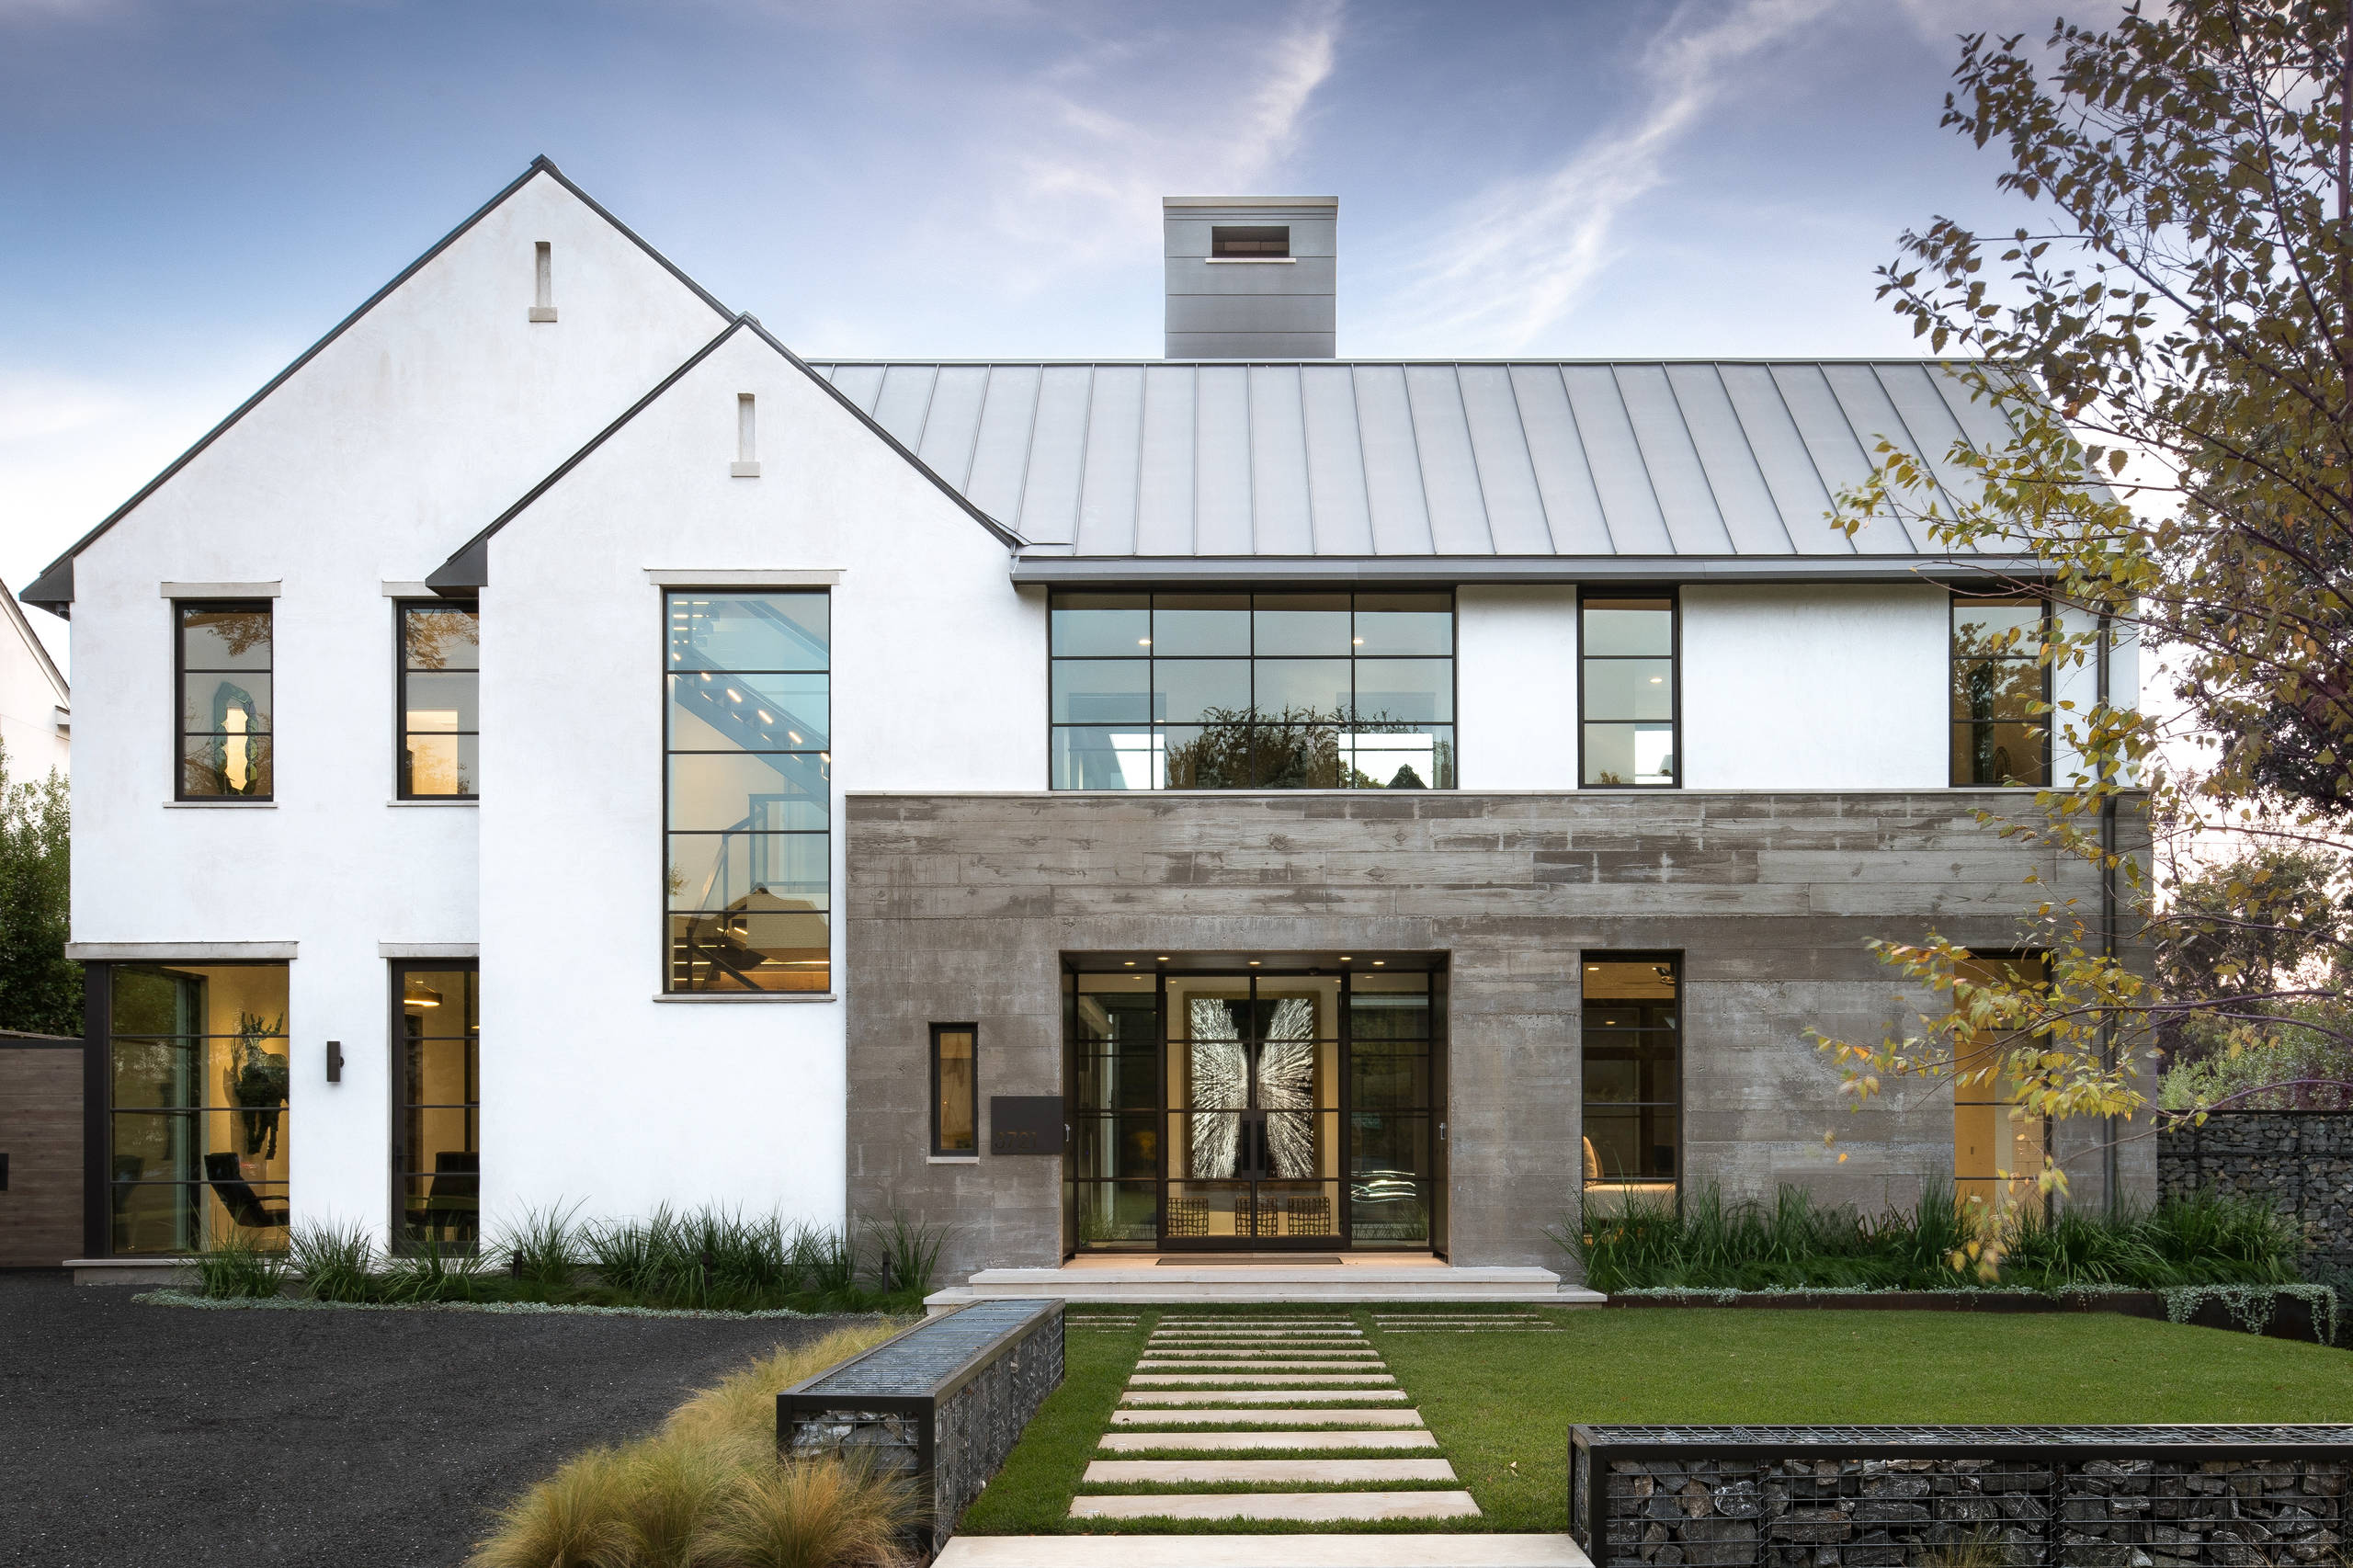 75 Beautiful Modern Gable Roof Pictures Ideas October 2020 Houzz